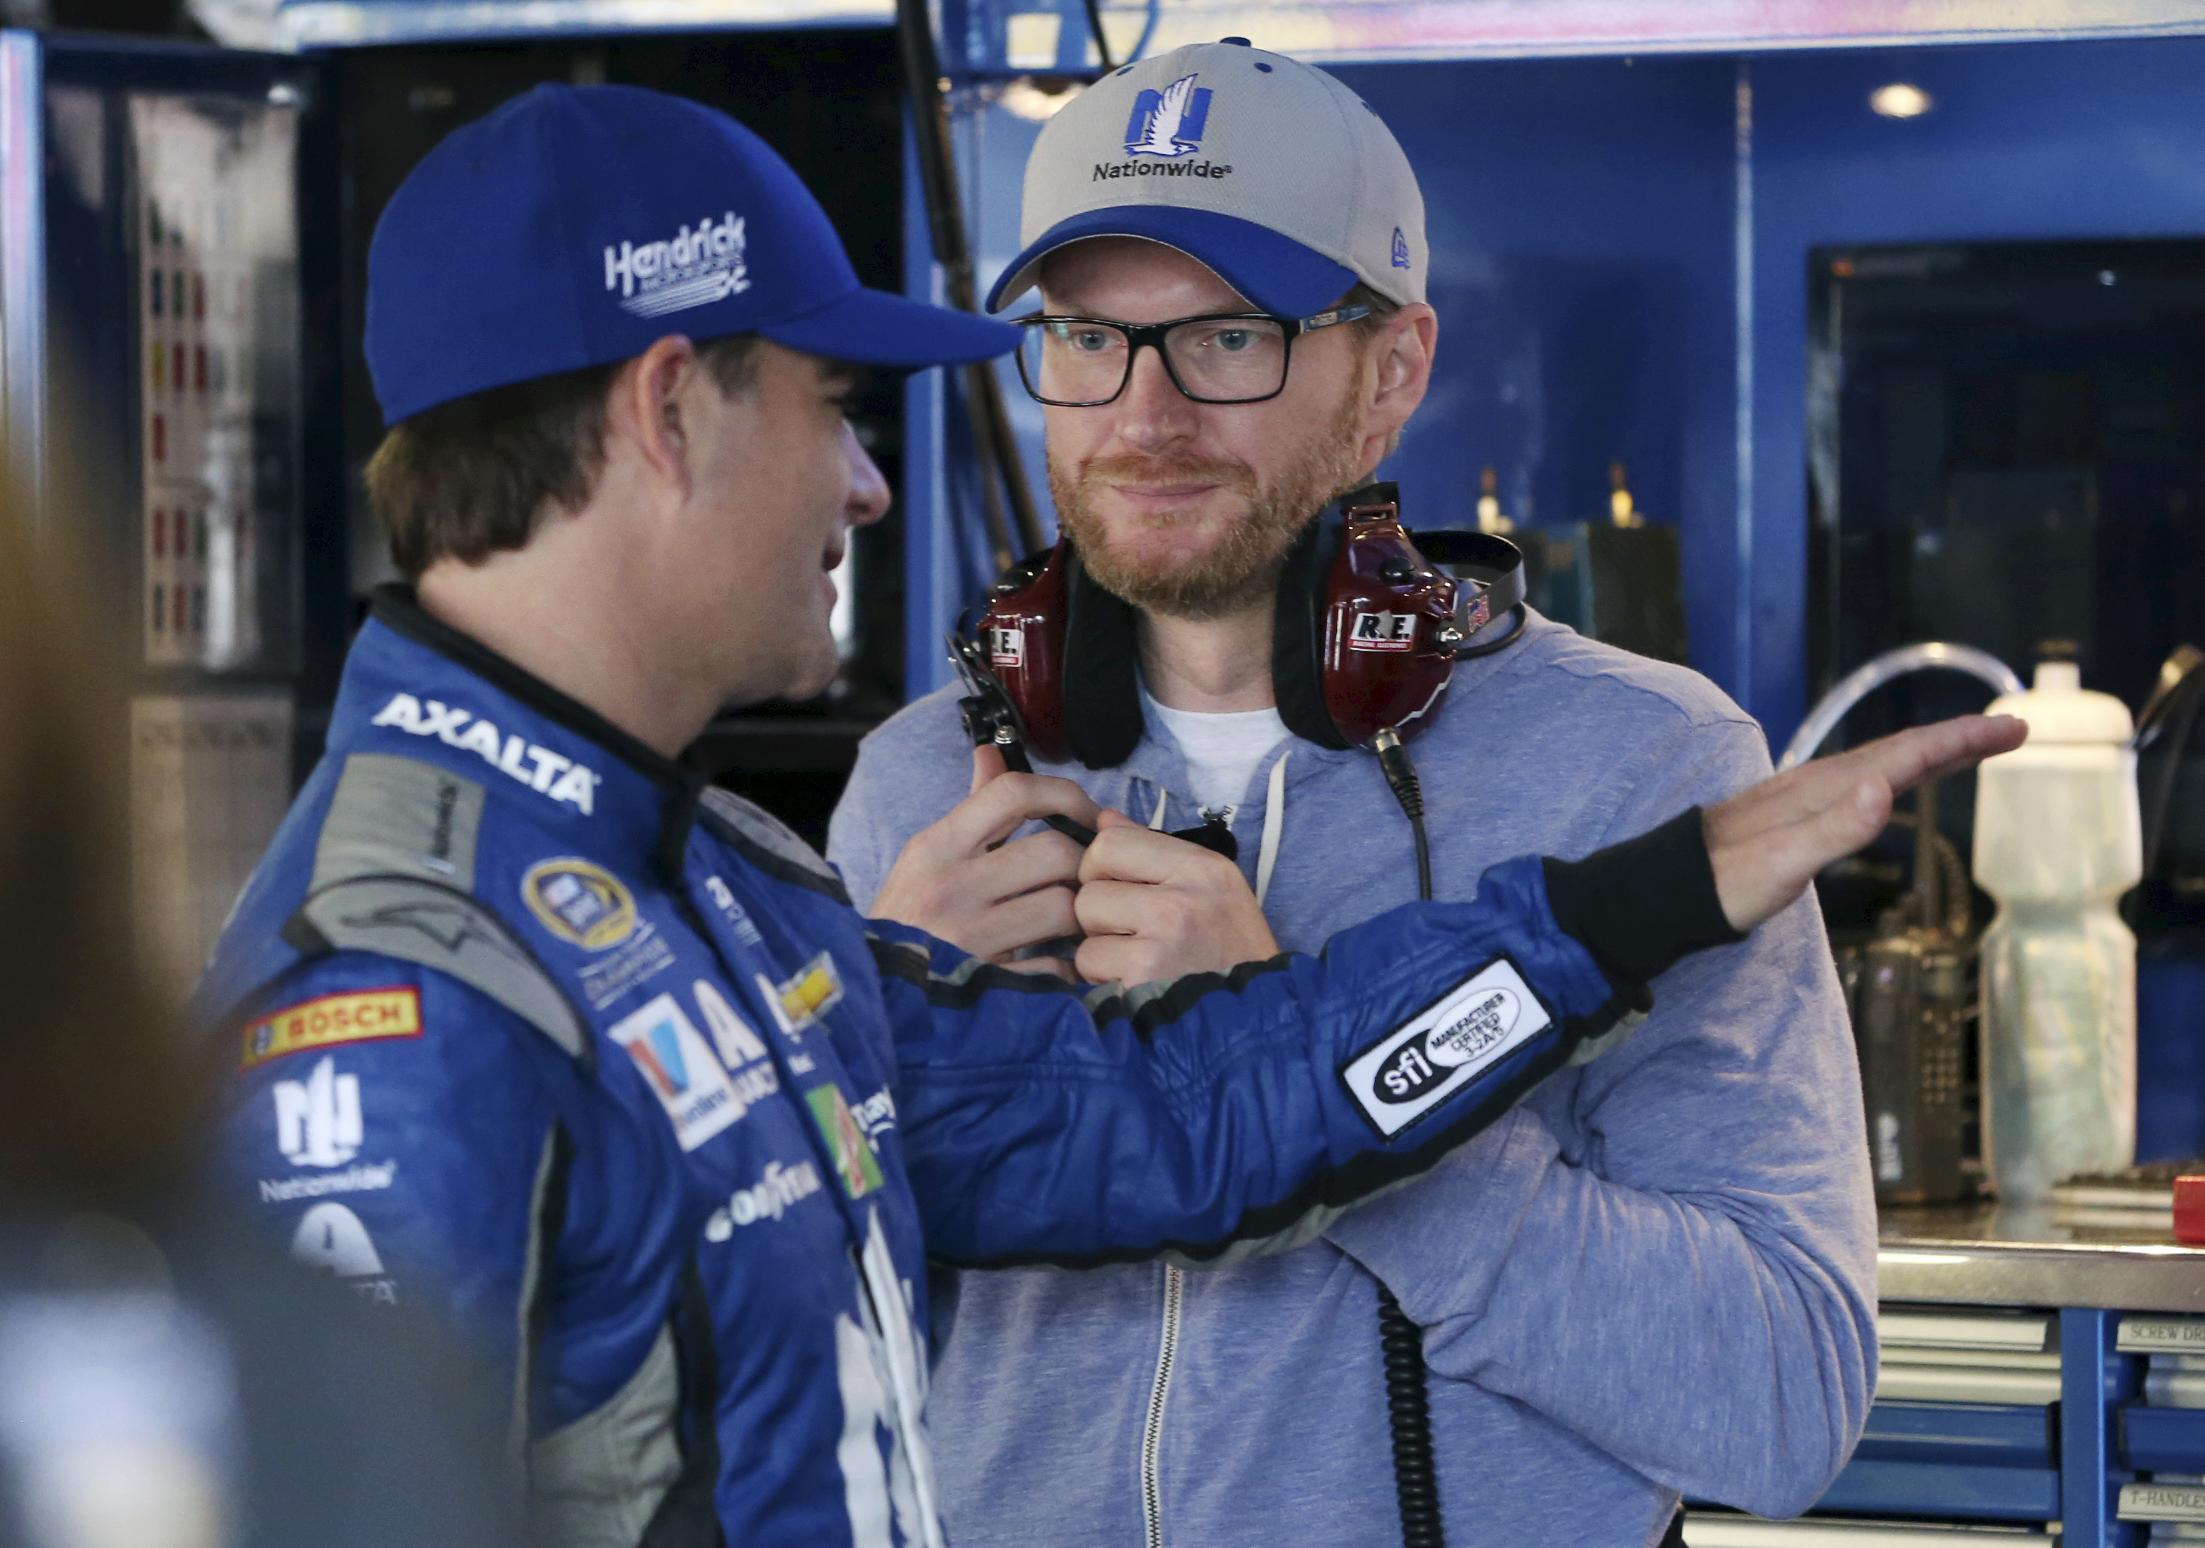 Suarez opens NASCAR doubleheader with Xfinity win at Dover